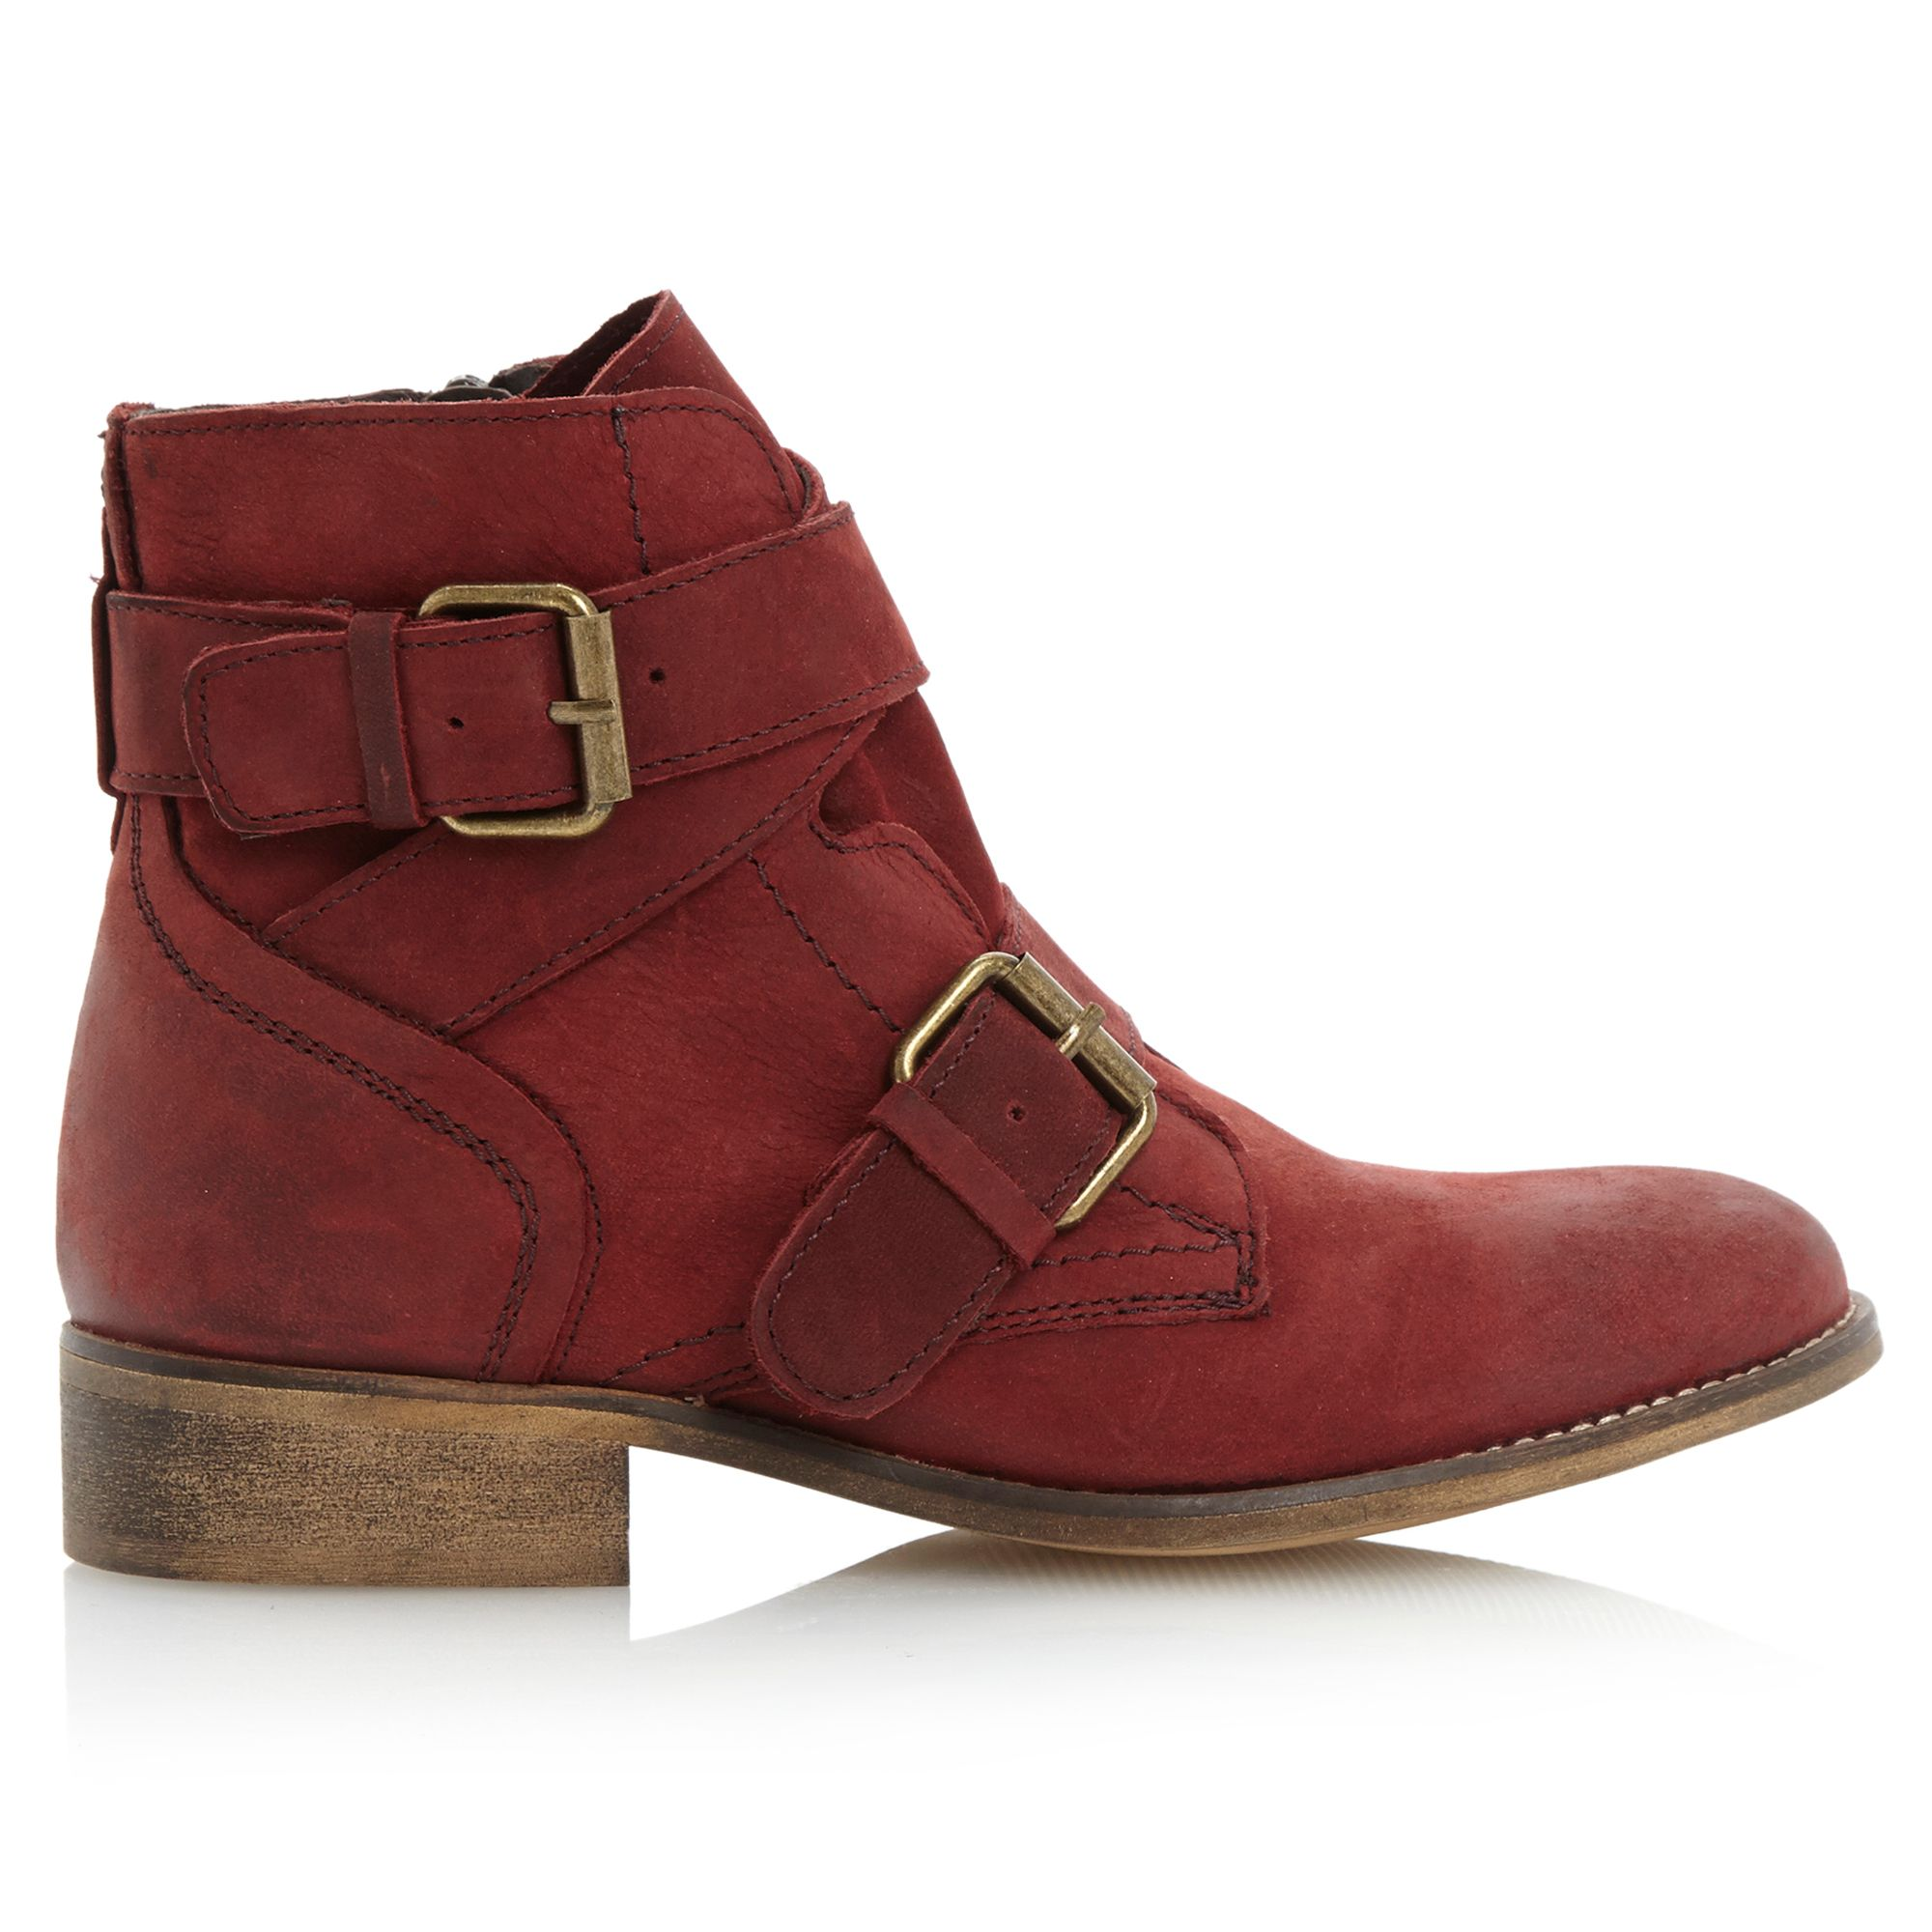 steve madden teritory buckle ankle boots in